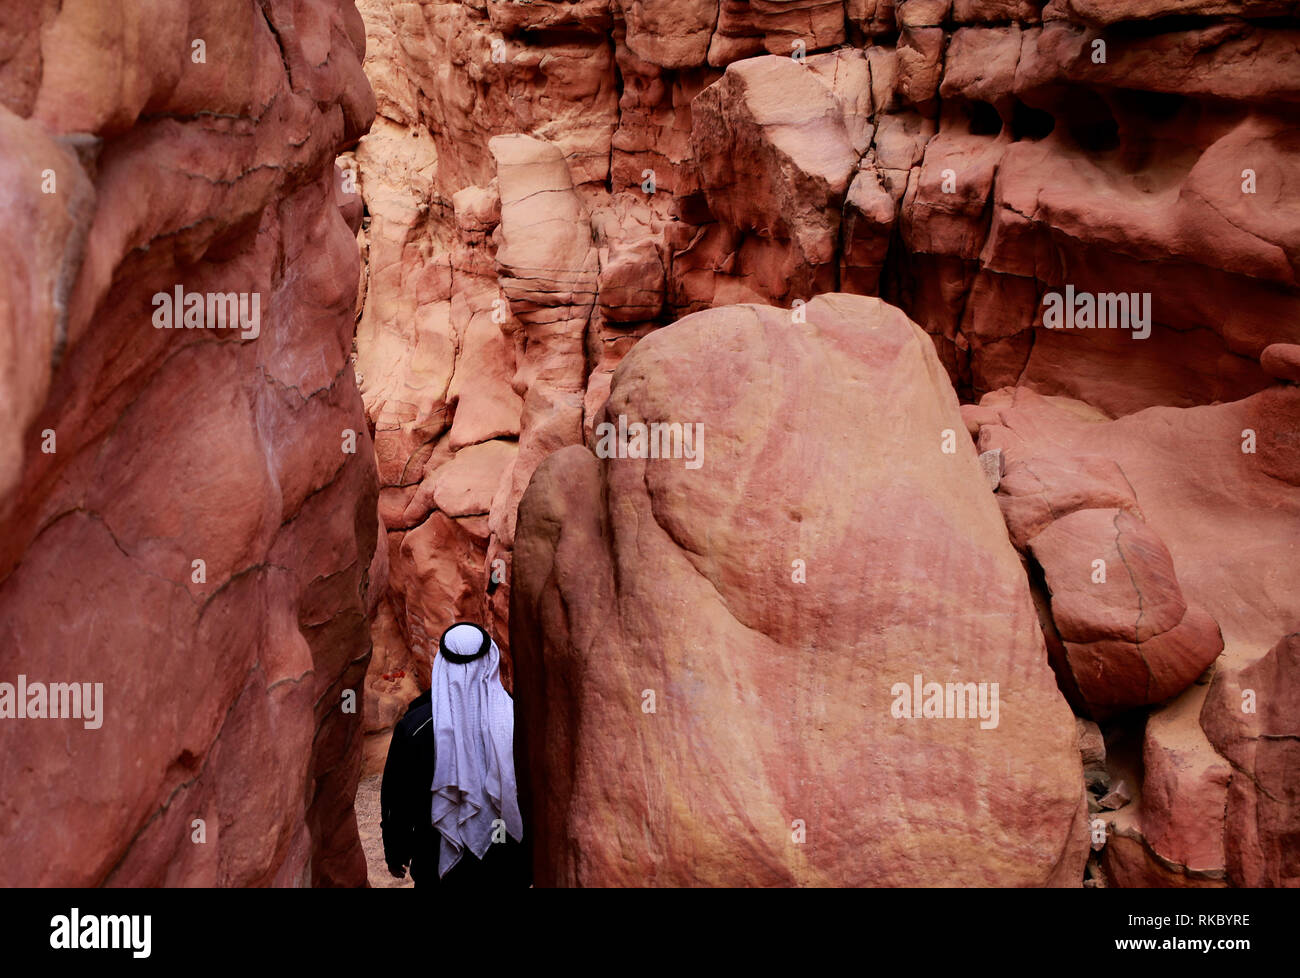 A Bedouin man walks through Egypt's Coloured Canyon near Nuweiba in the Sinai Peninsula.(Photo/Hasan Jamali) - Stock Image